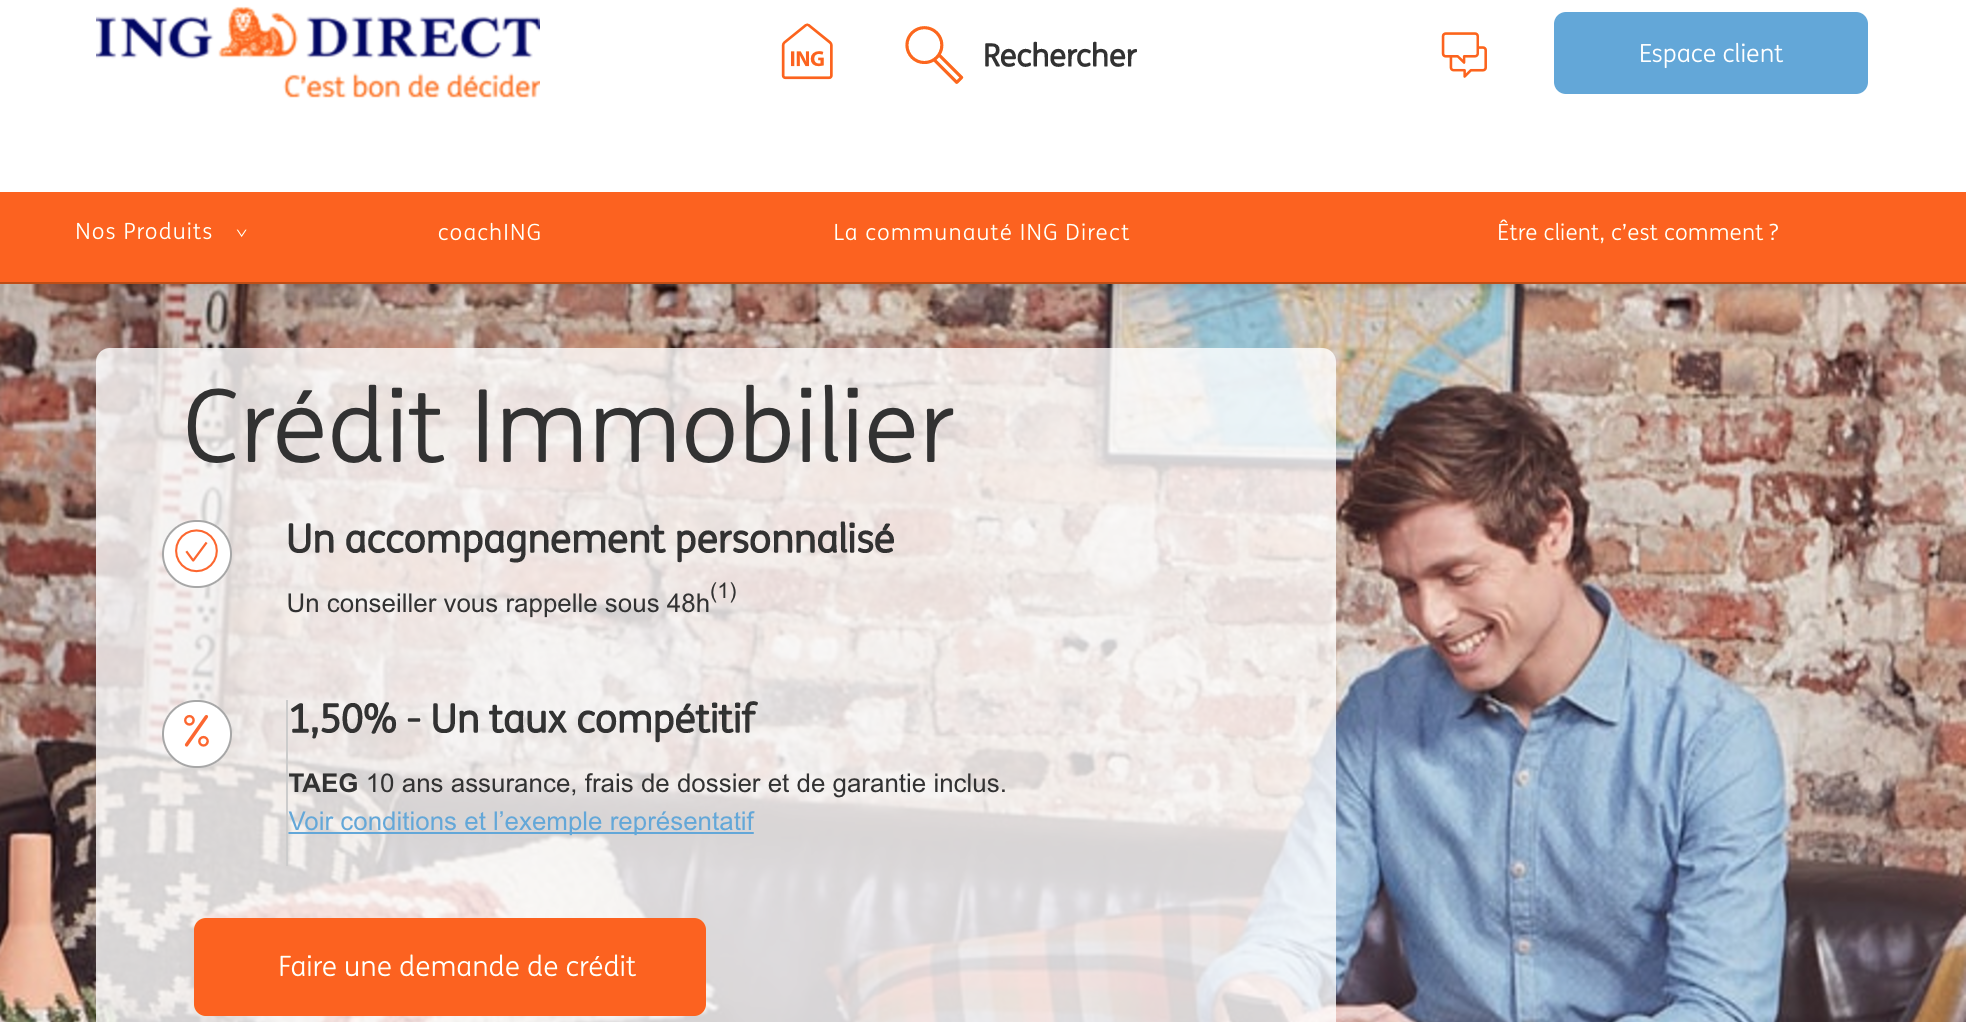 Credit immobilier ING Direct